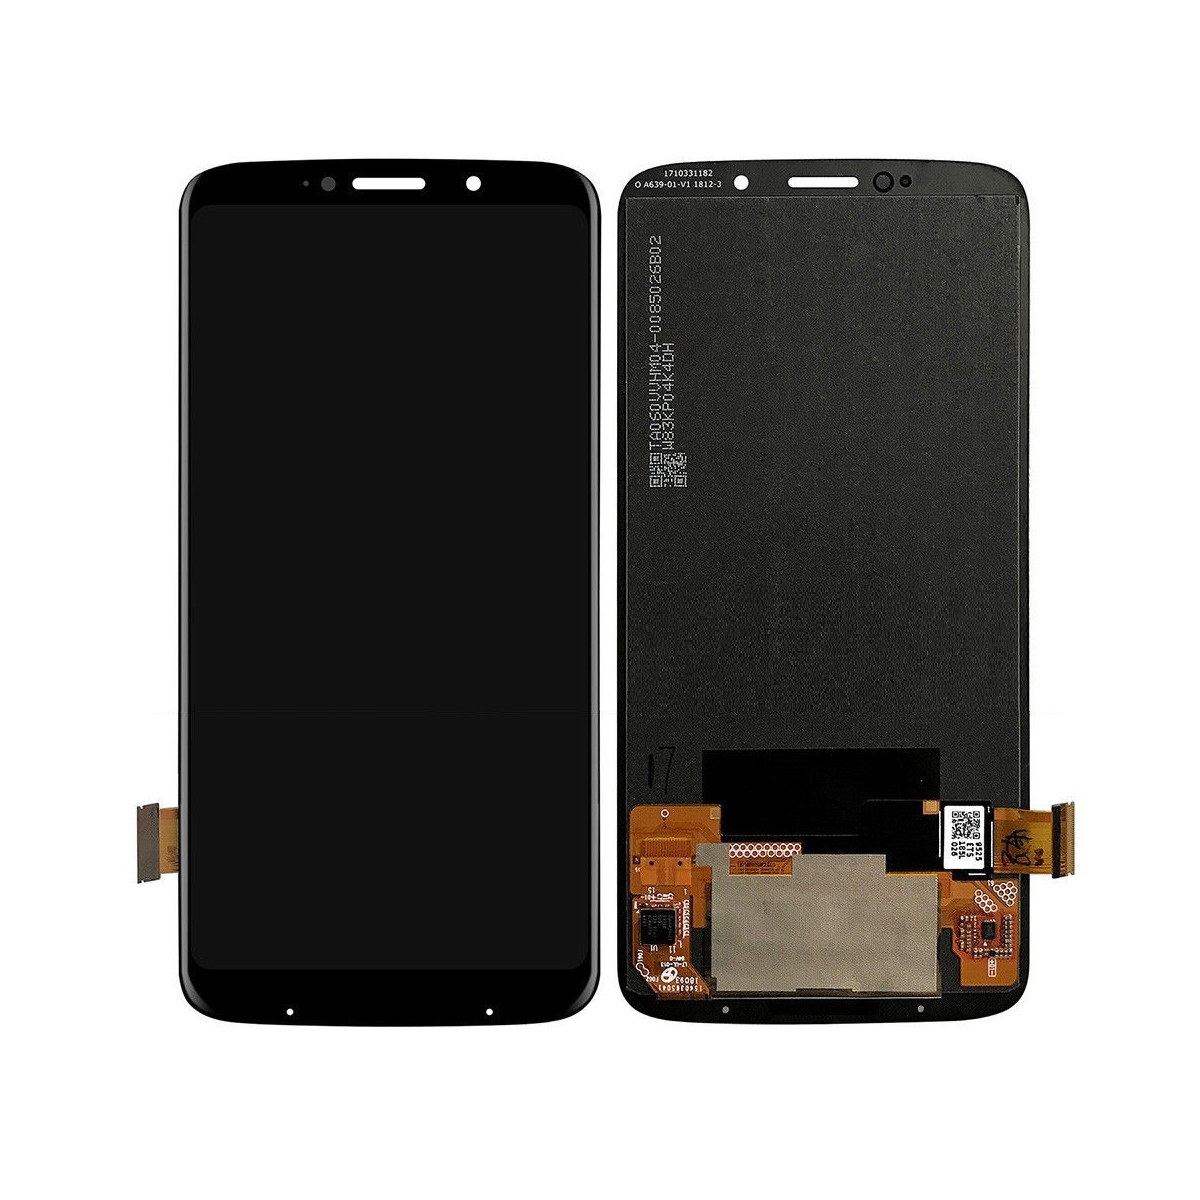 AMOLED For Motorola Moto Z3 Play XT1929 LCD Display Touch Screen Digitizer Assembly For Moto Z3 Play Display Replacement